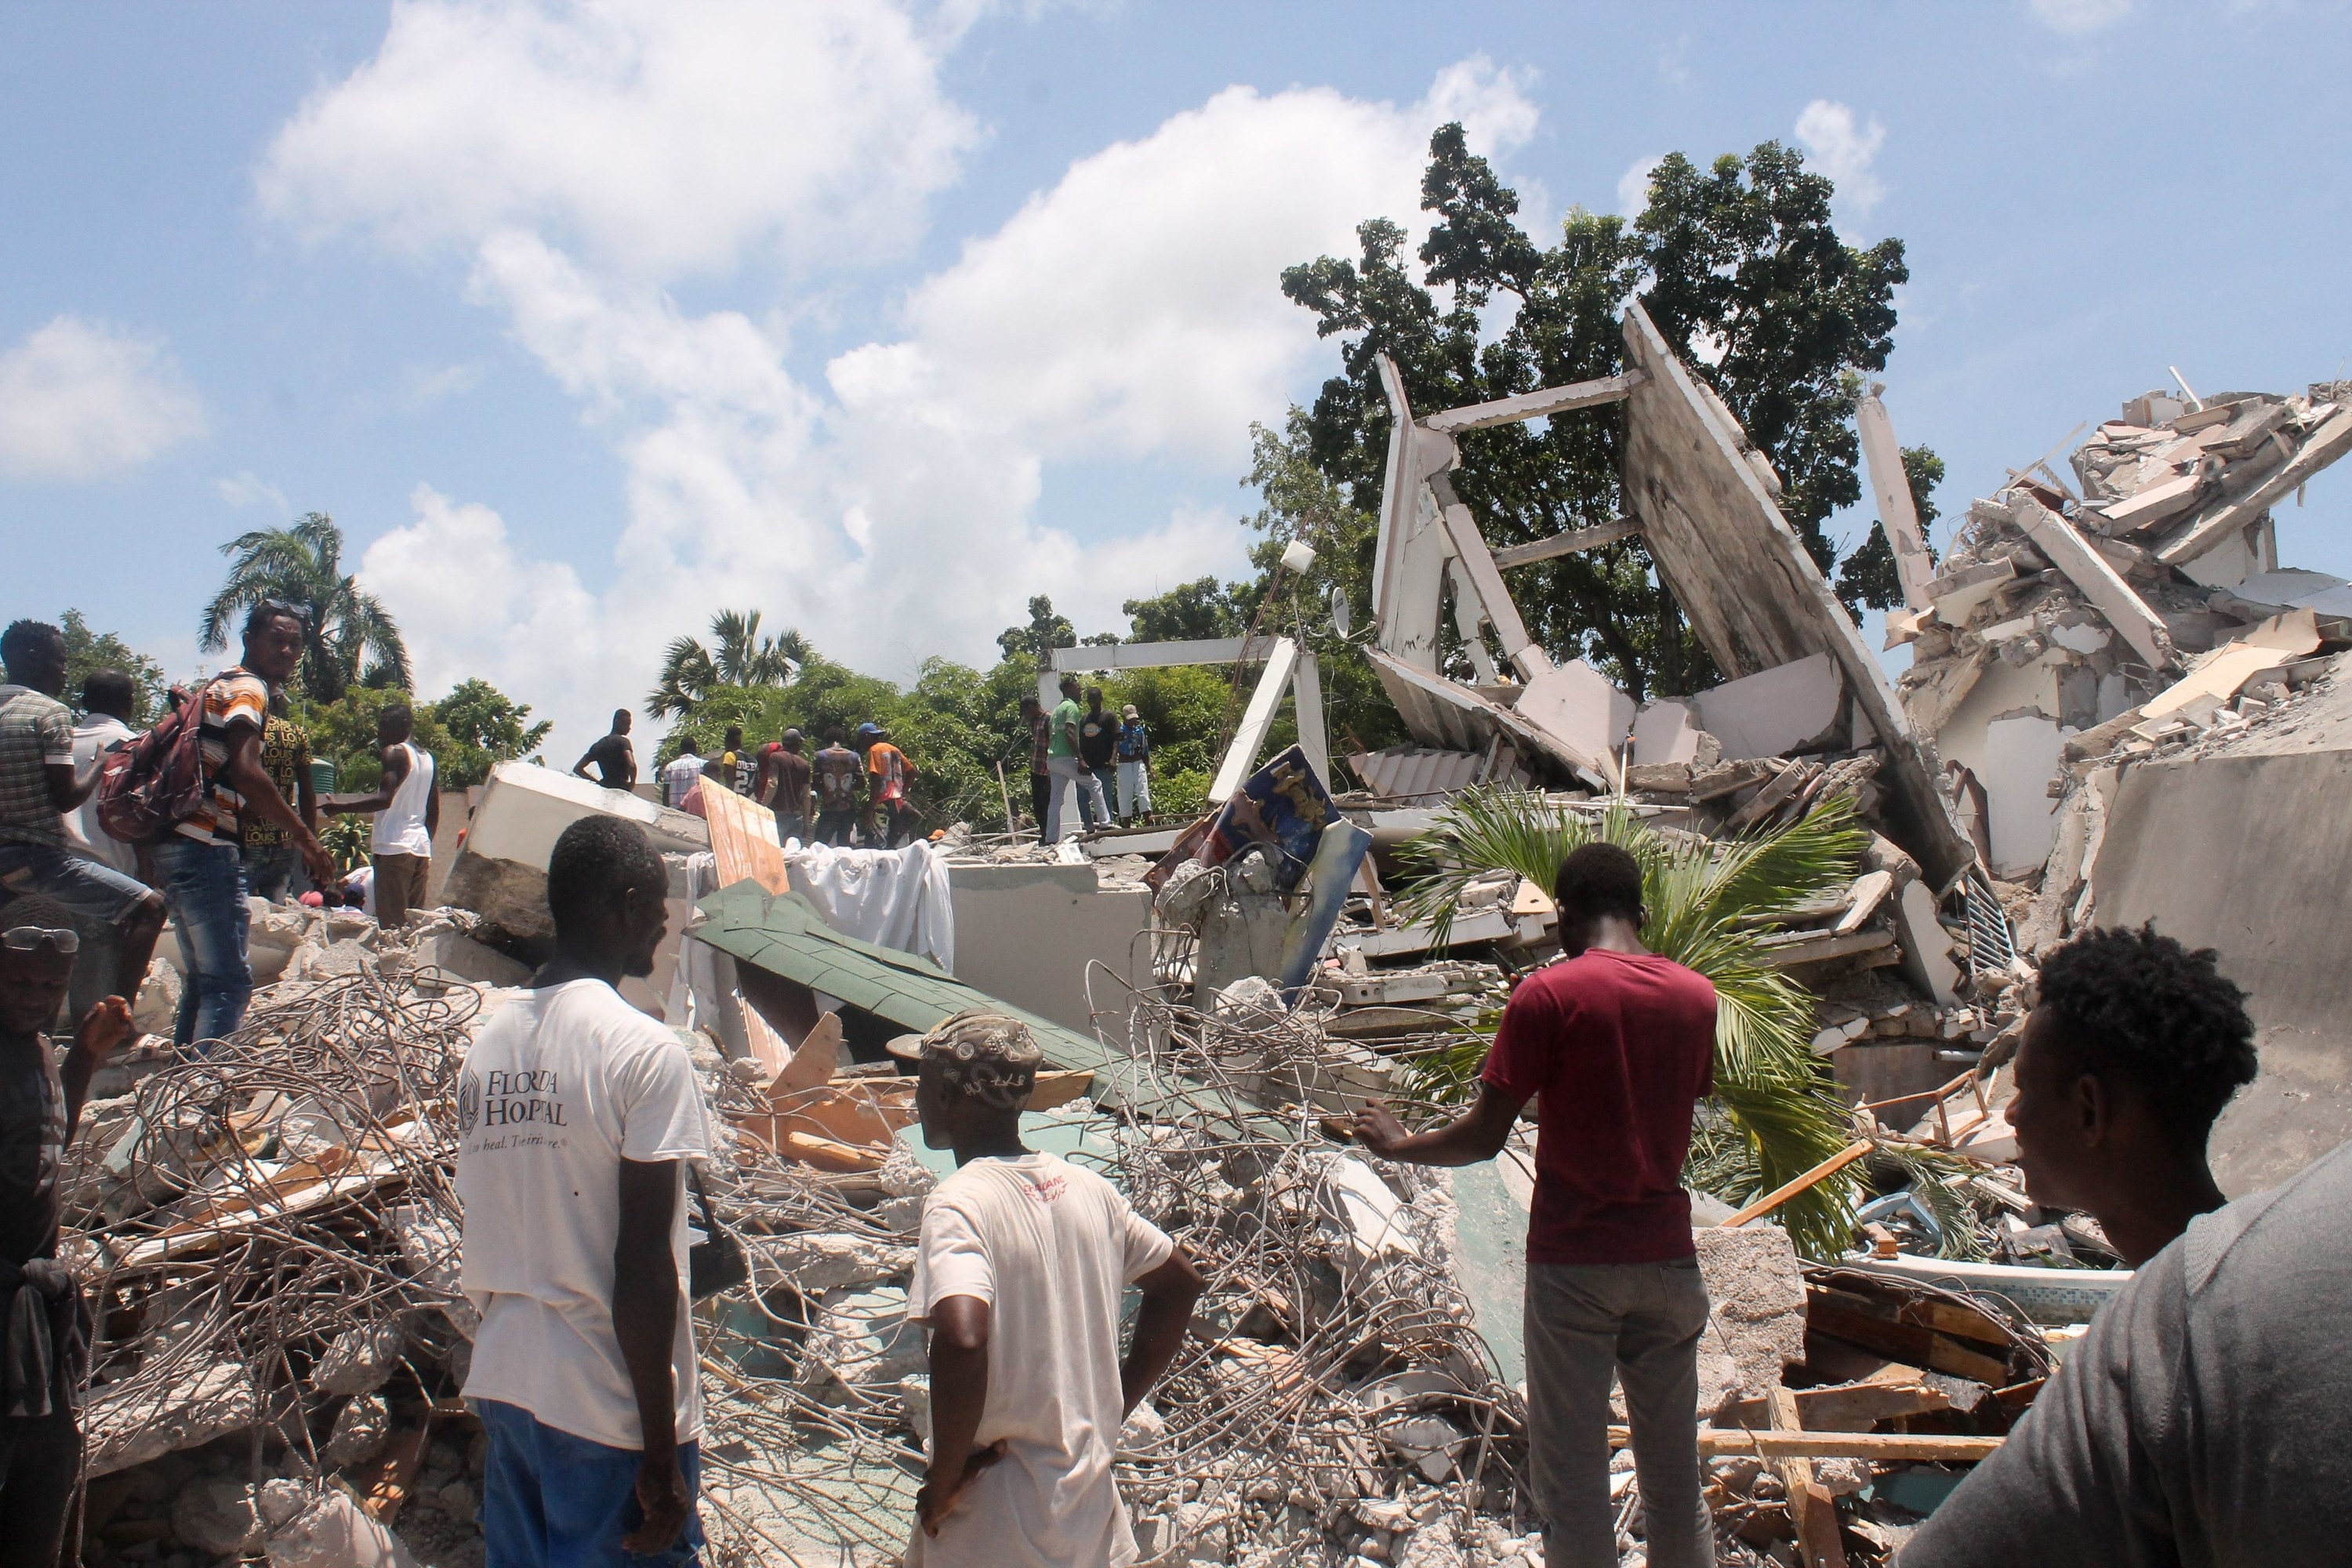 People walk on top of rubble and debris on a sunny day